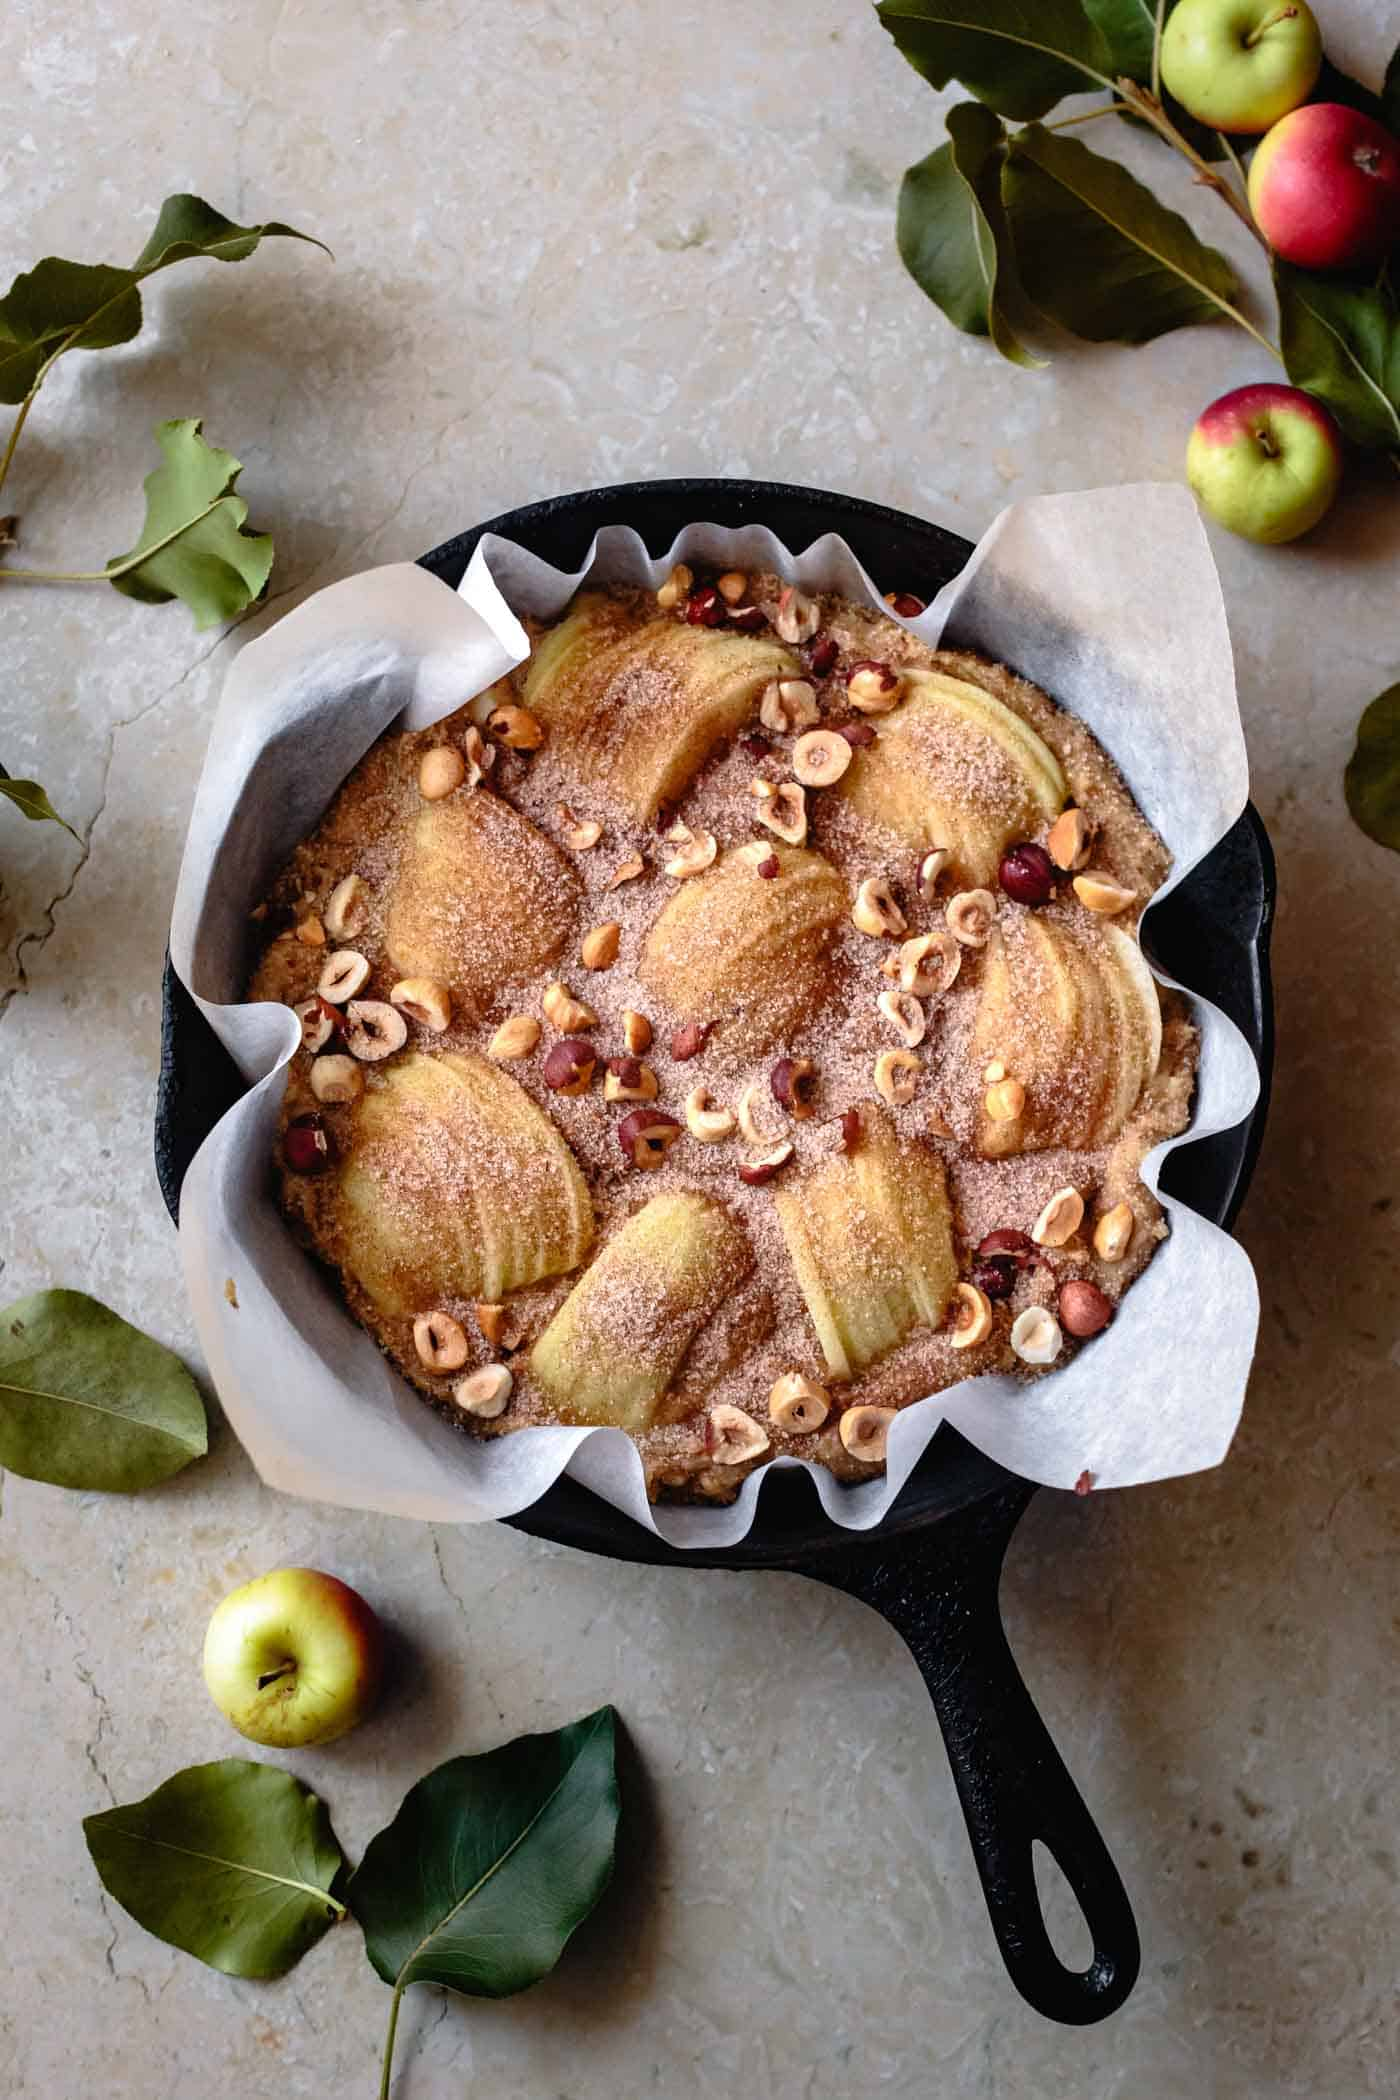 gluten-free fresh apple cake, before baking